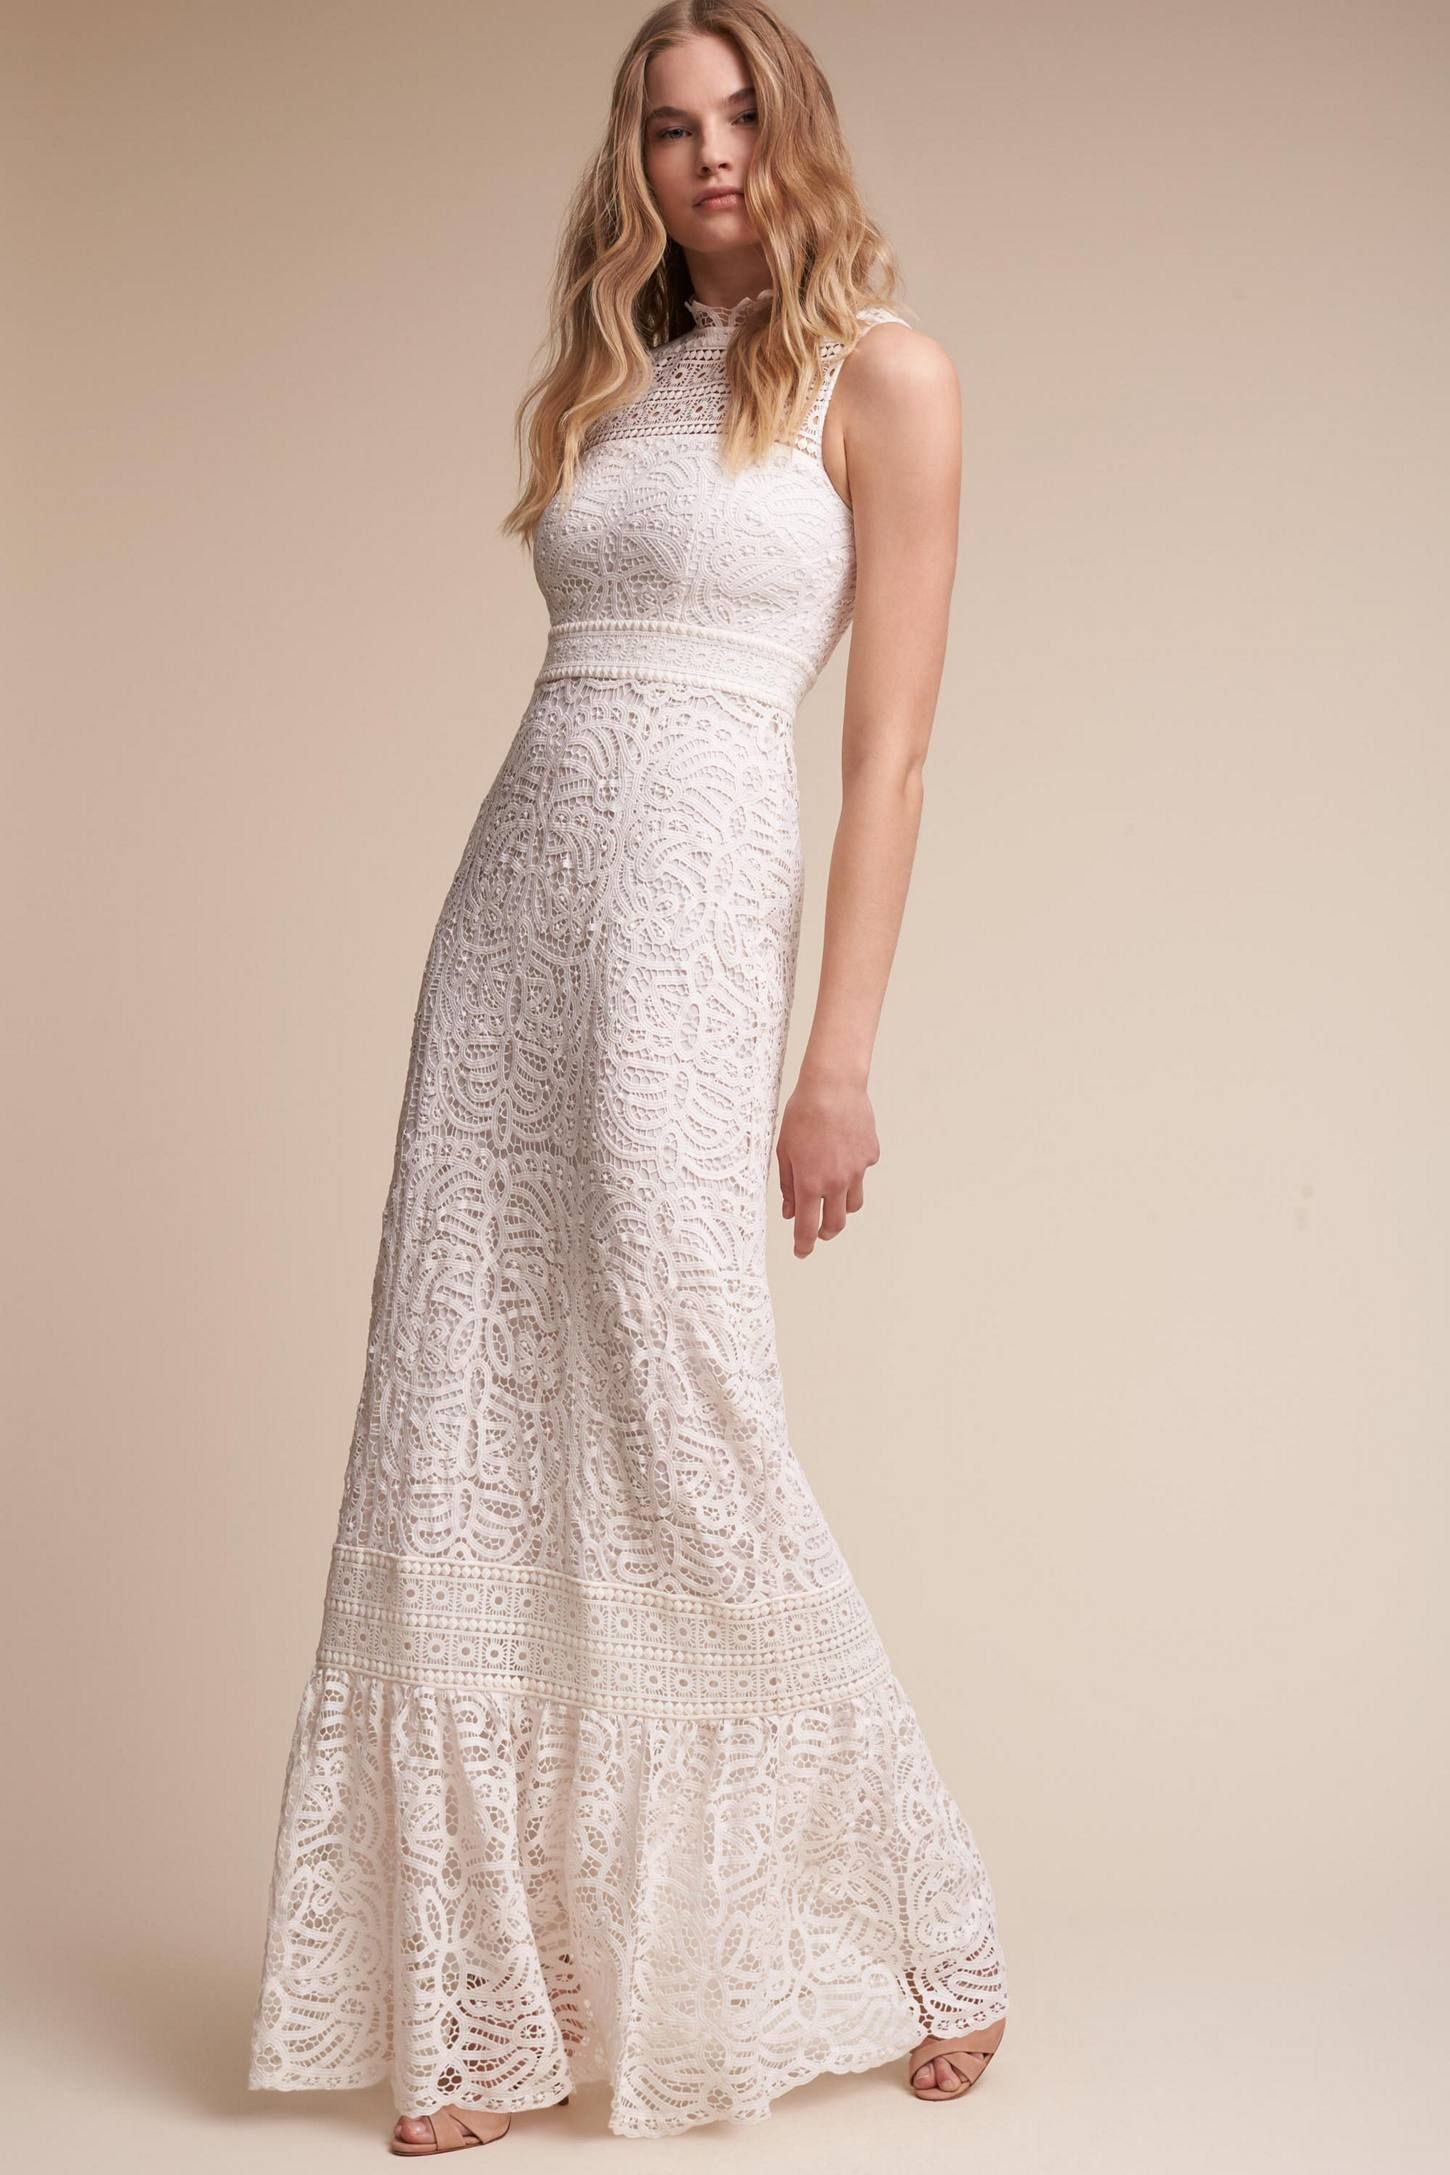 Casual wedding dresses with sleeves  Ojai Dress  Anthropologie Clothing and Detail